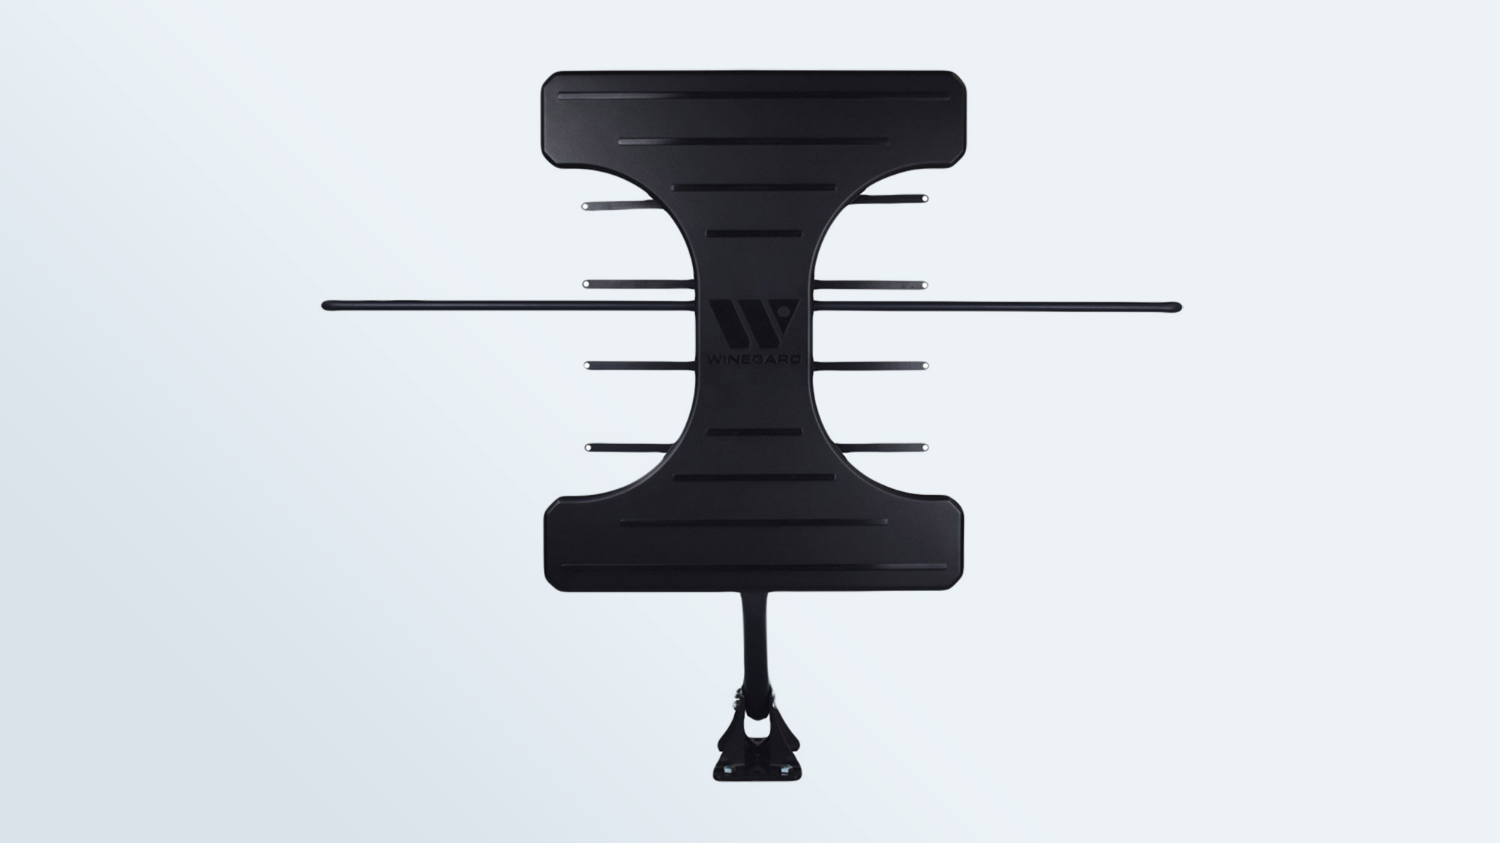 Best TV antenna: Winegard Elite 7550 Outdoor HDTV Antenna